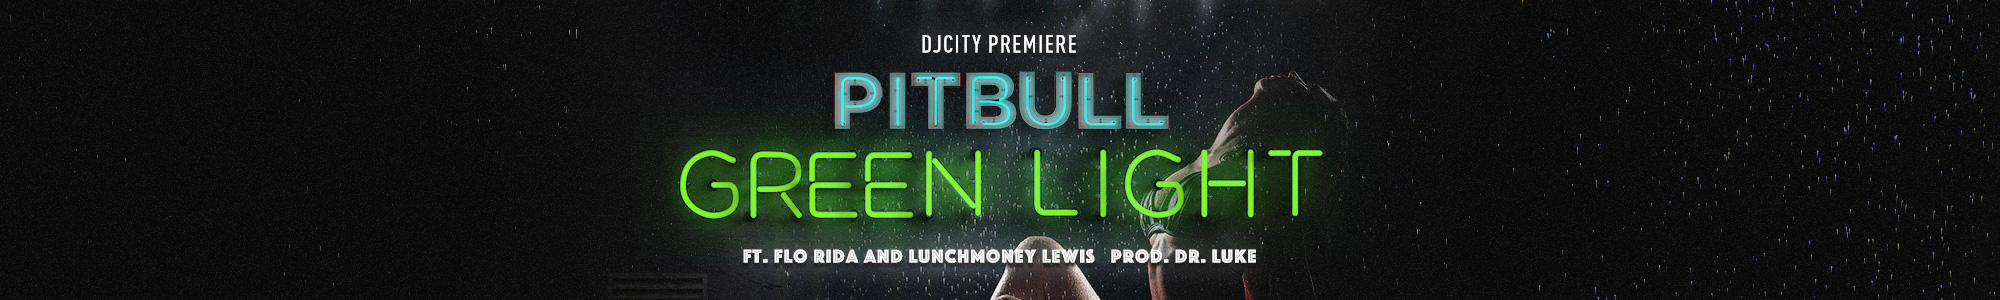 Pitbull Greenlight